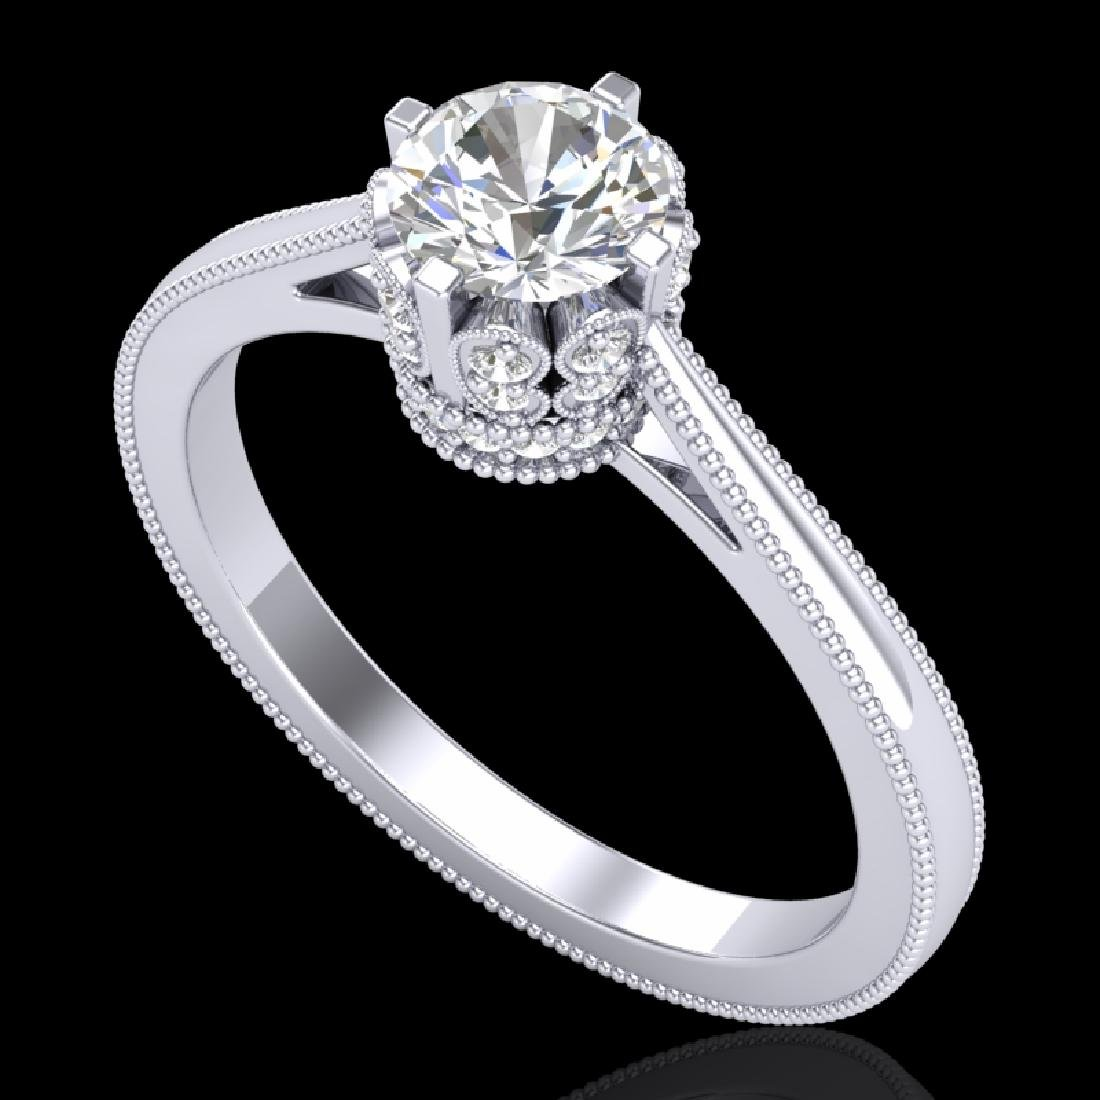 0.81 CTW VS/SI Diamond Art Deco Ring 18K White Gold